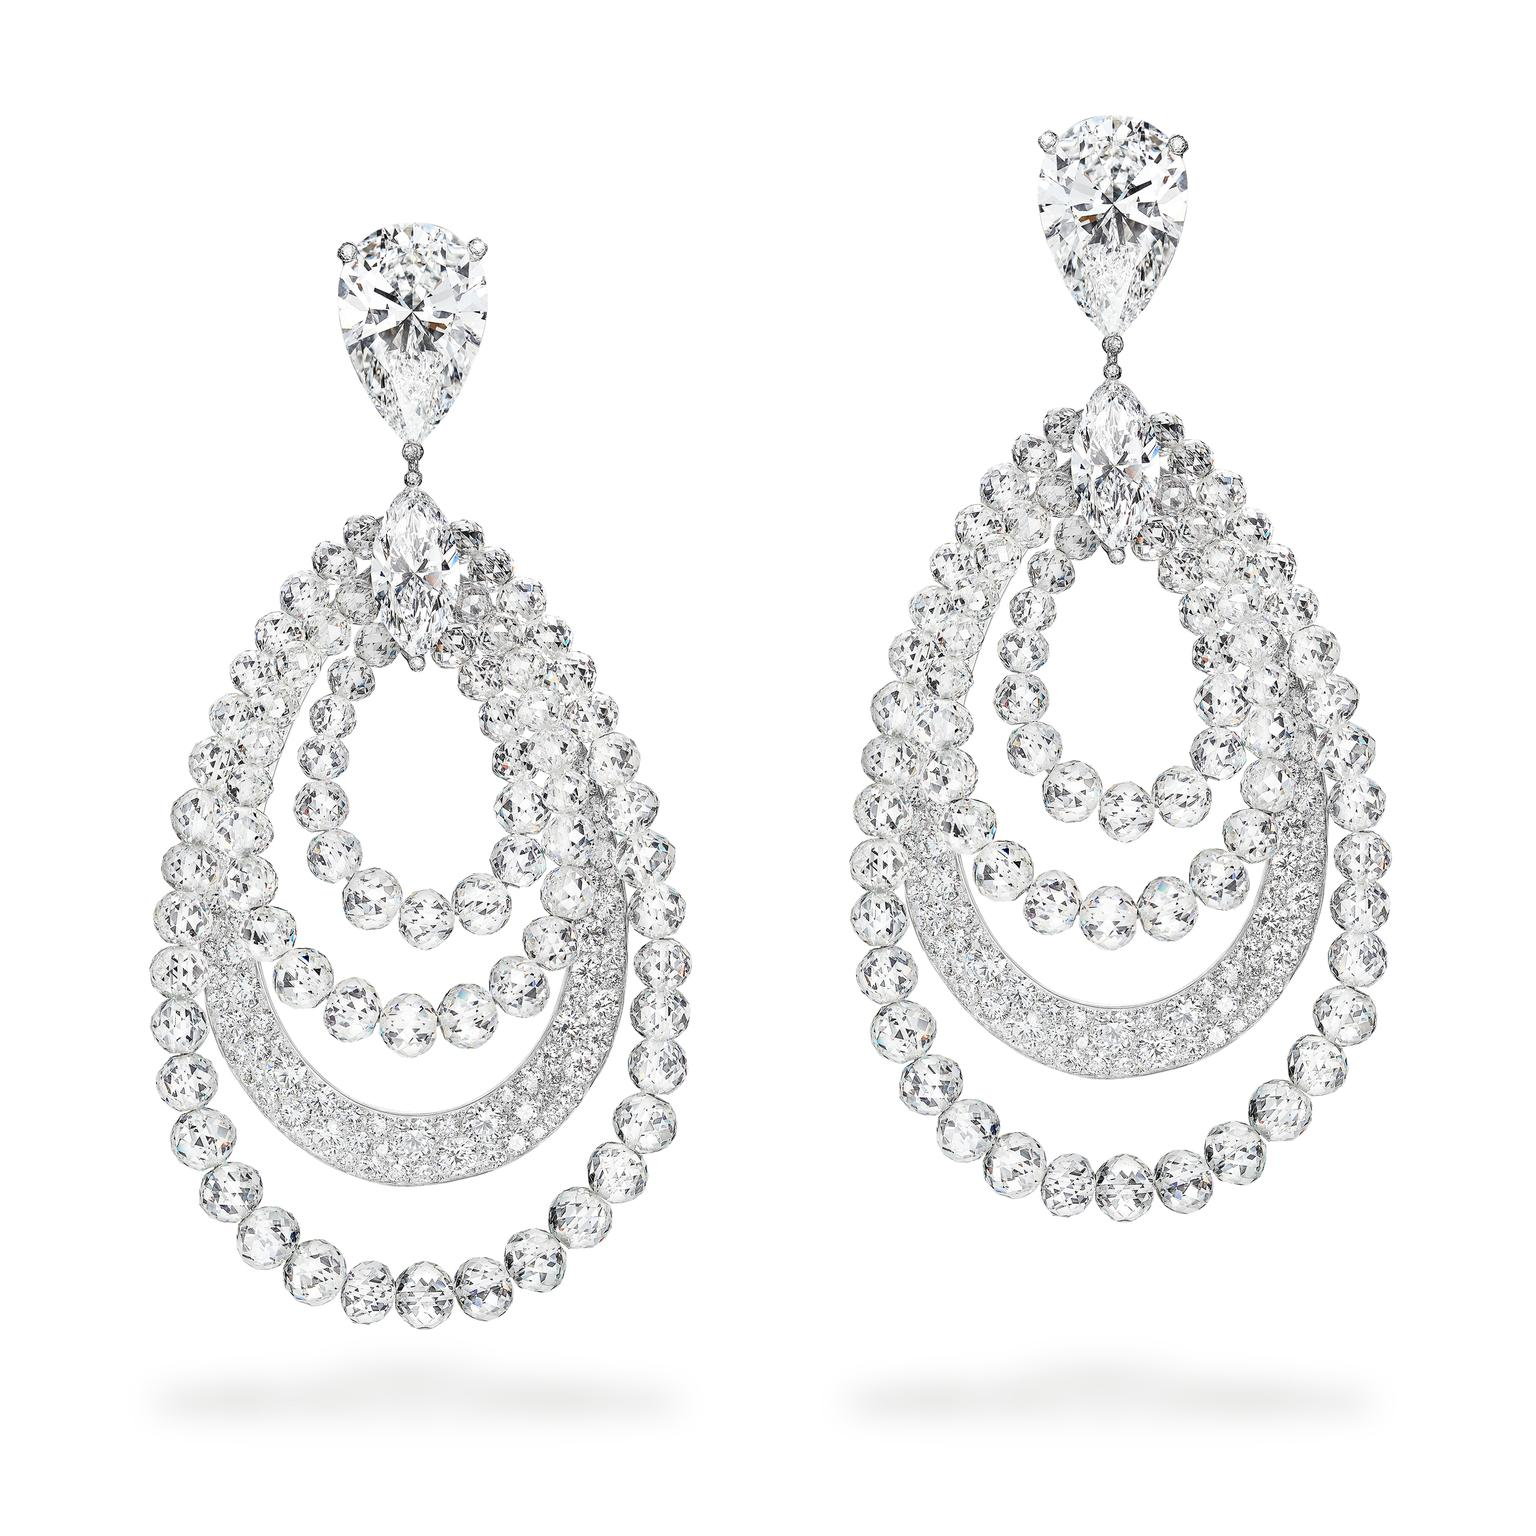 de GRISOGONO Love on the Rocks white diamond High Jewellery earrings